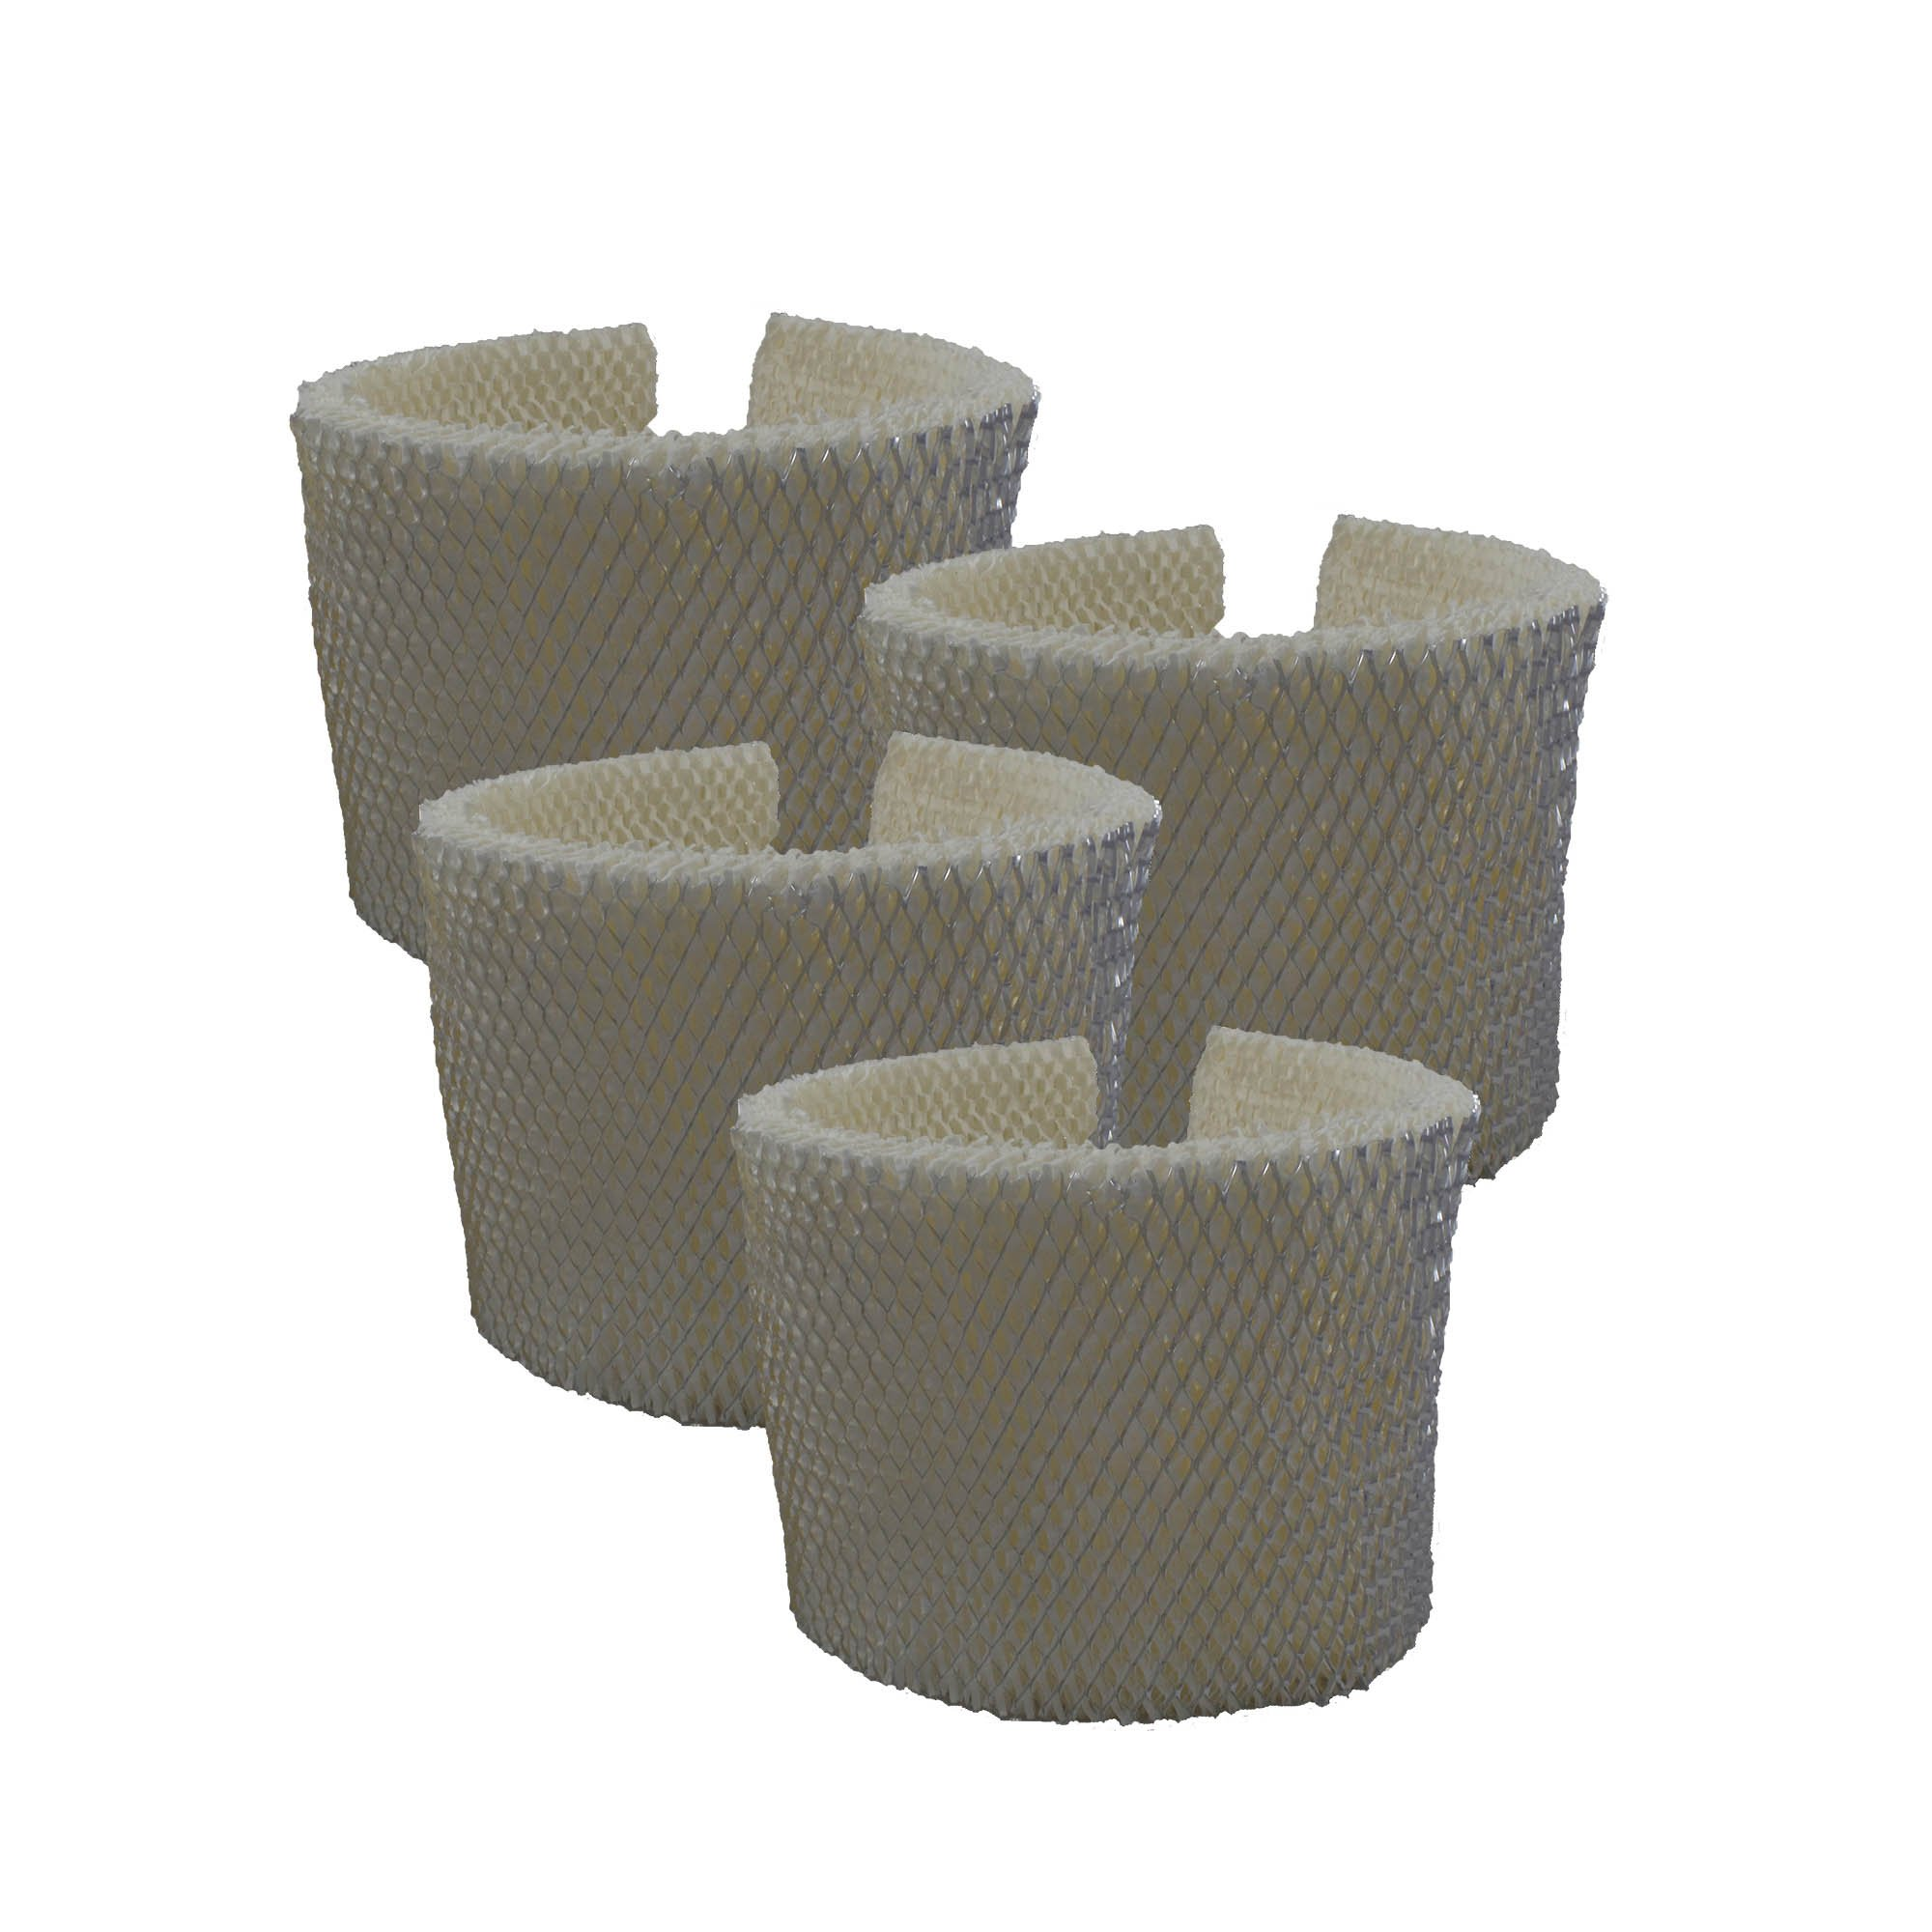 4 PACK Air Filter Factory Compatible Replacement For Kenmore 14906 Humidifer Filter